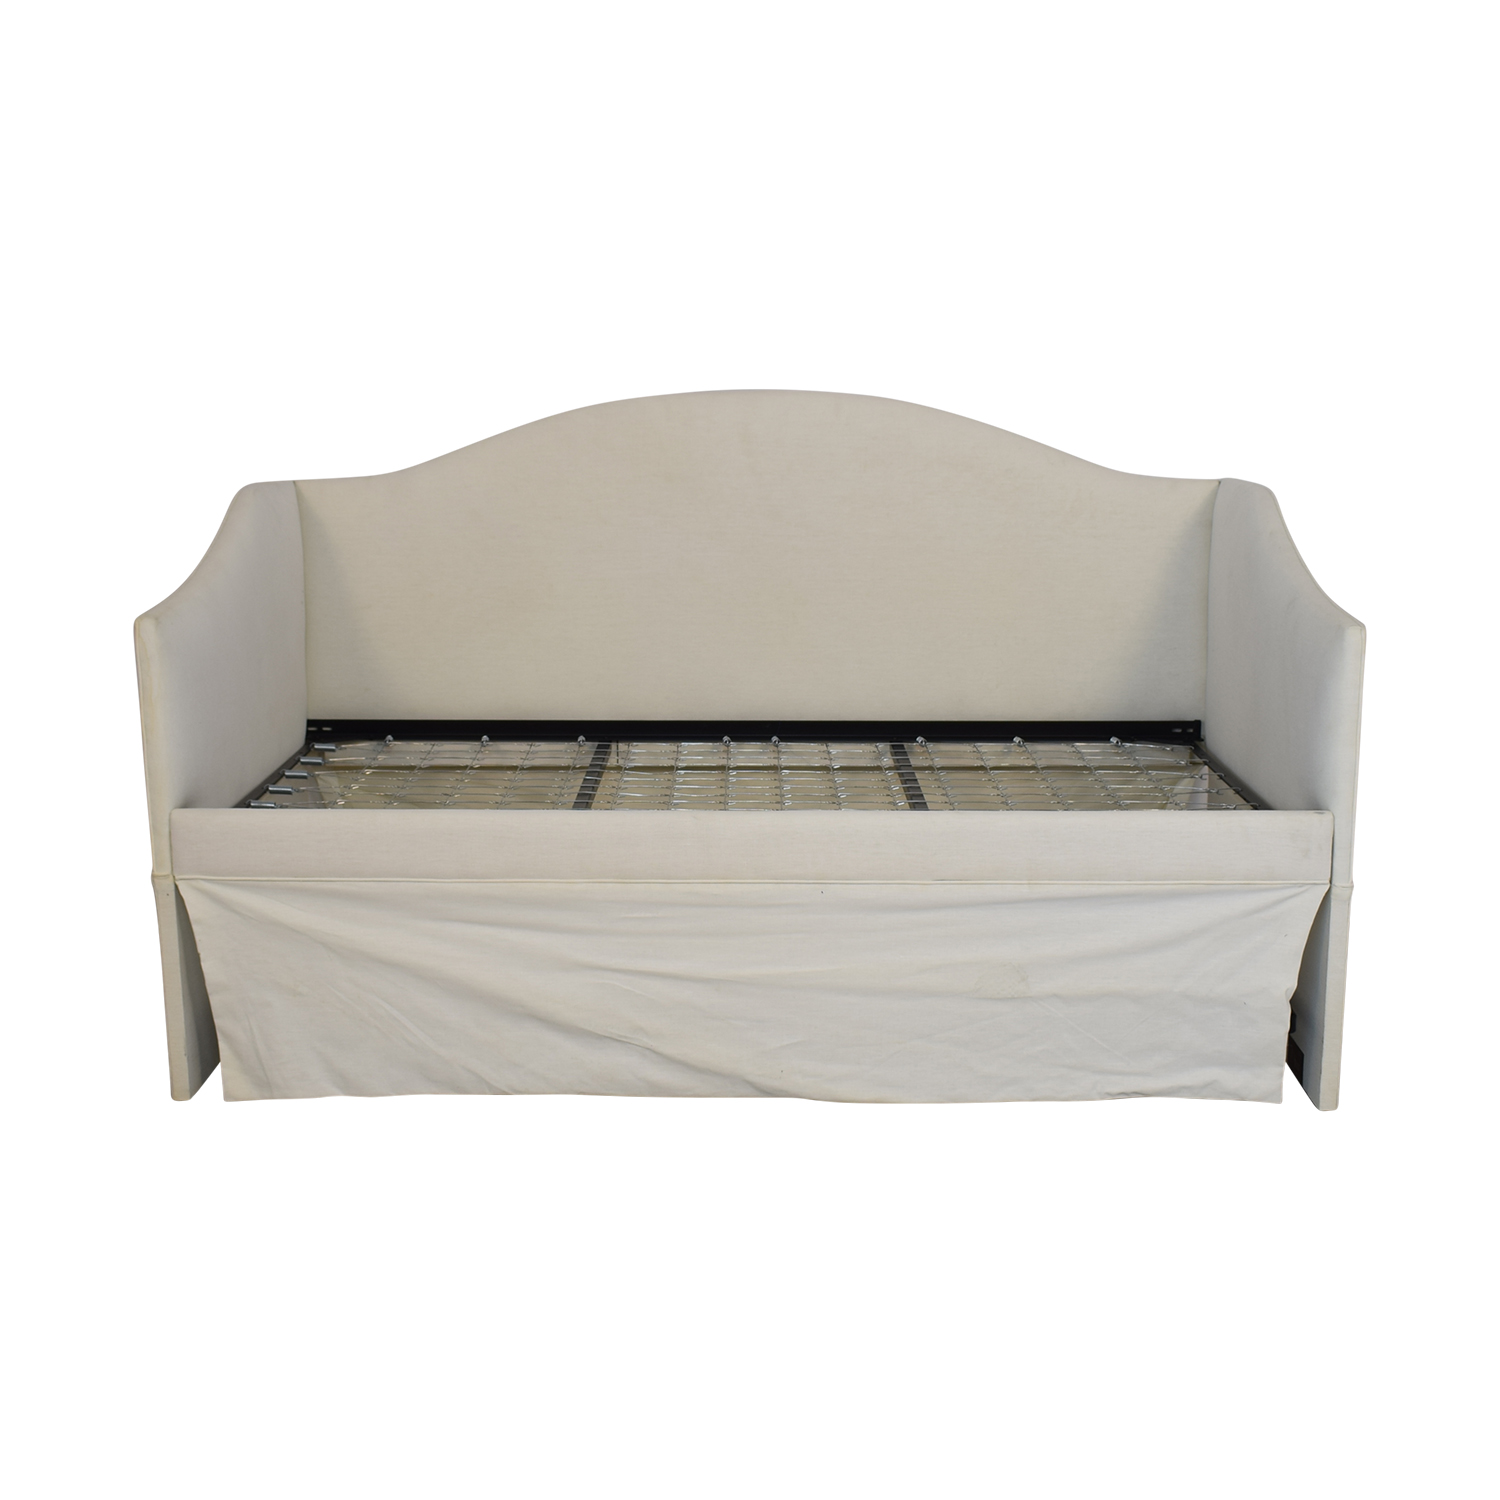 Ballard Designs Ballard Designs Larkin Upholstered Daybed with Trundle nyc